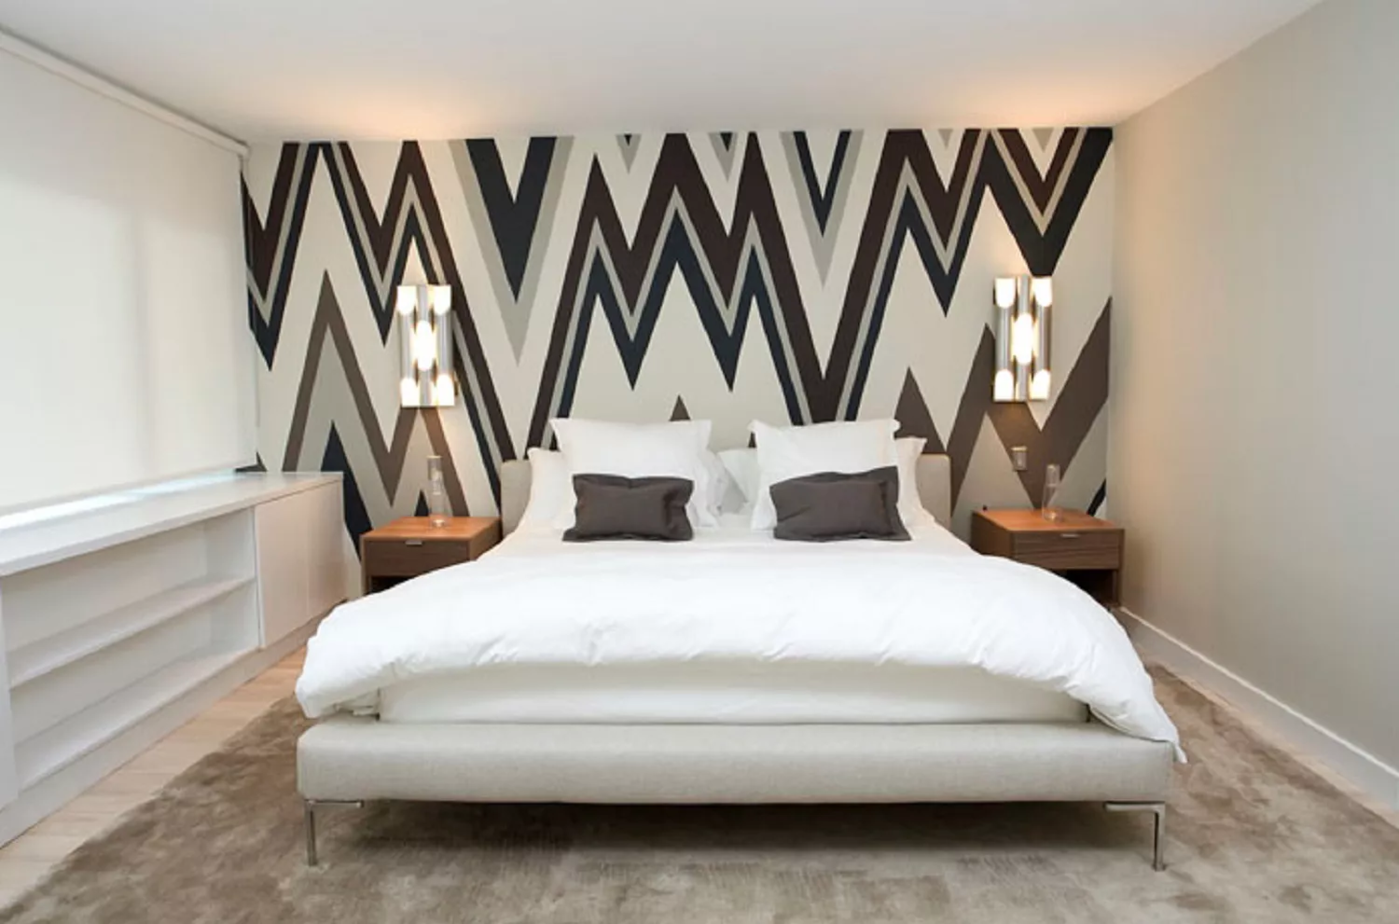 9.Go for a Bold Accent Wall via Simphome.com